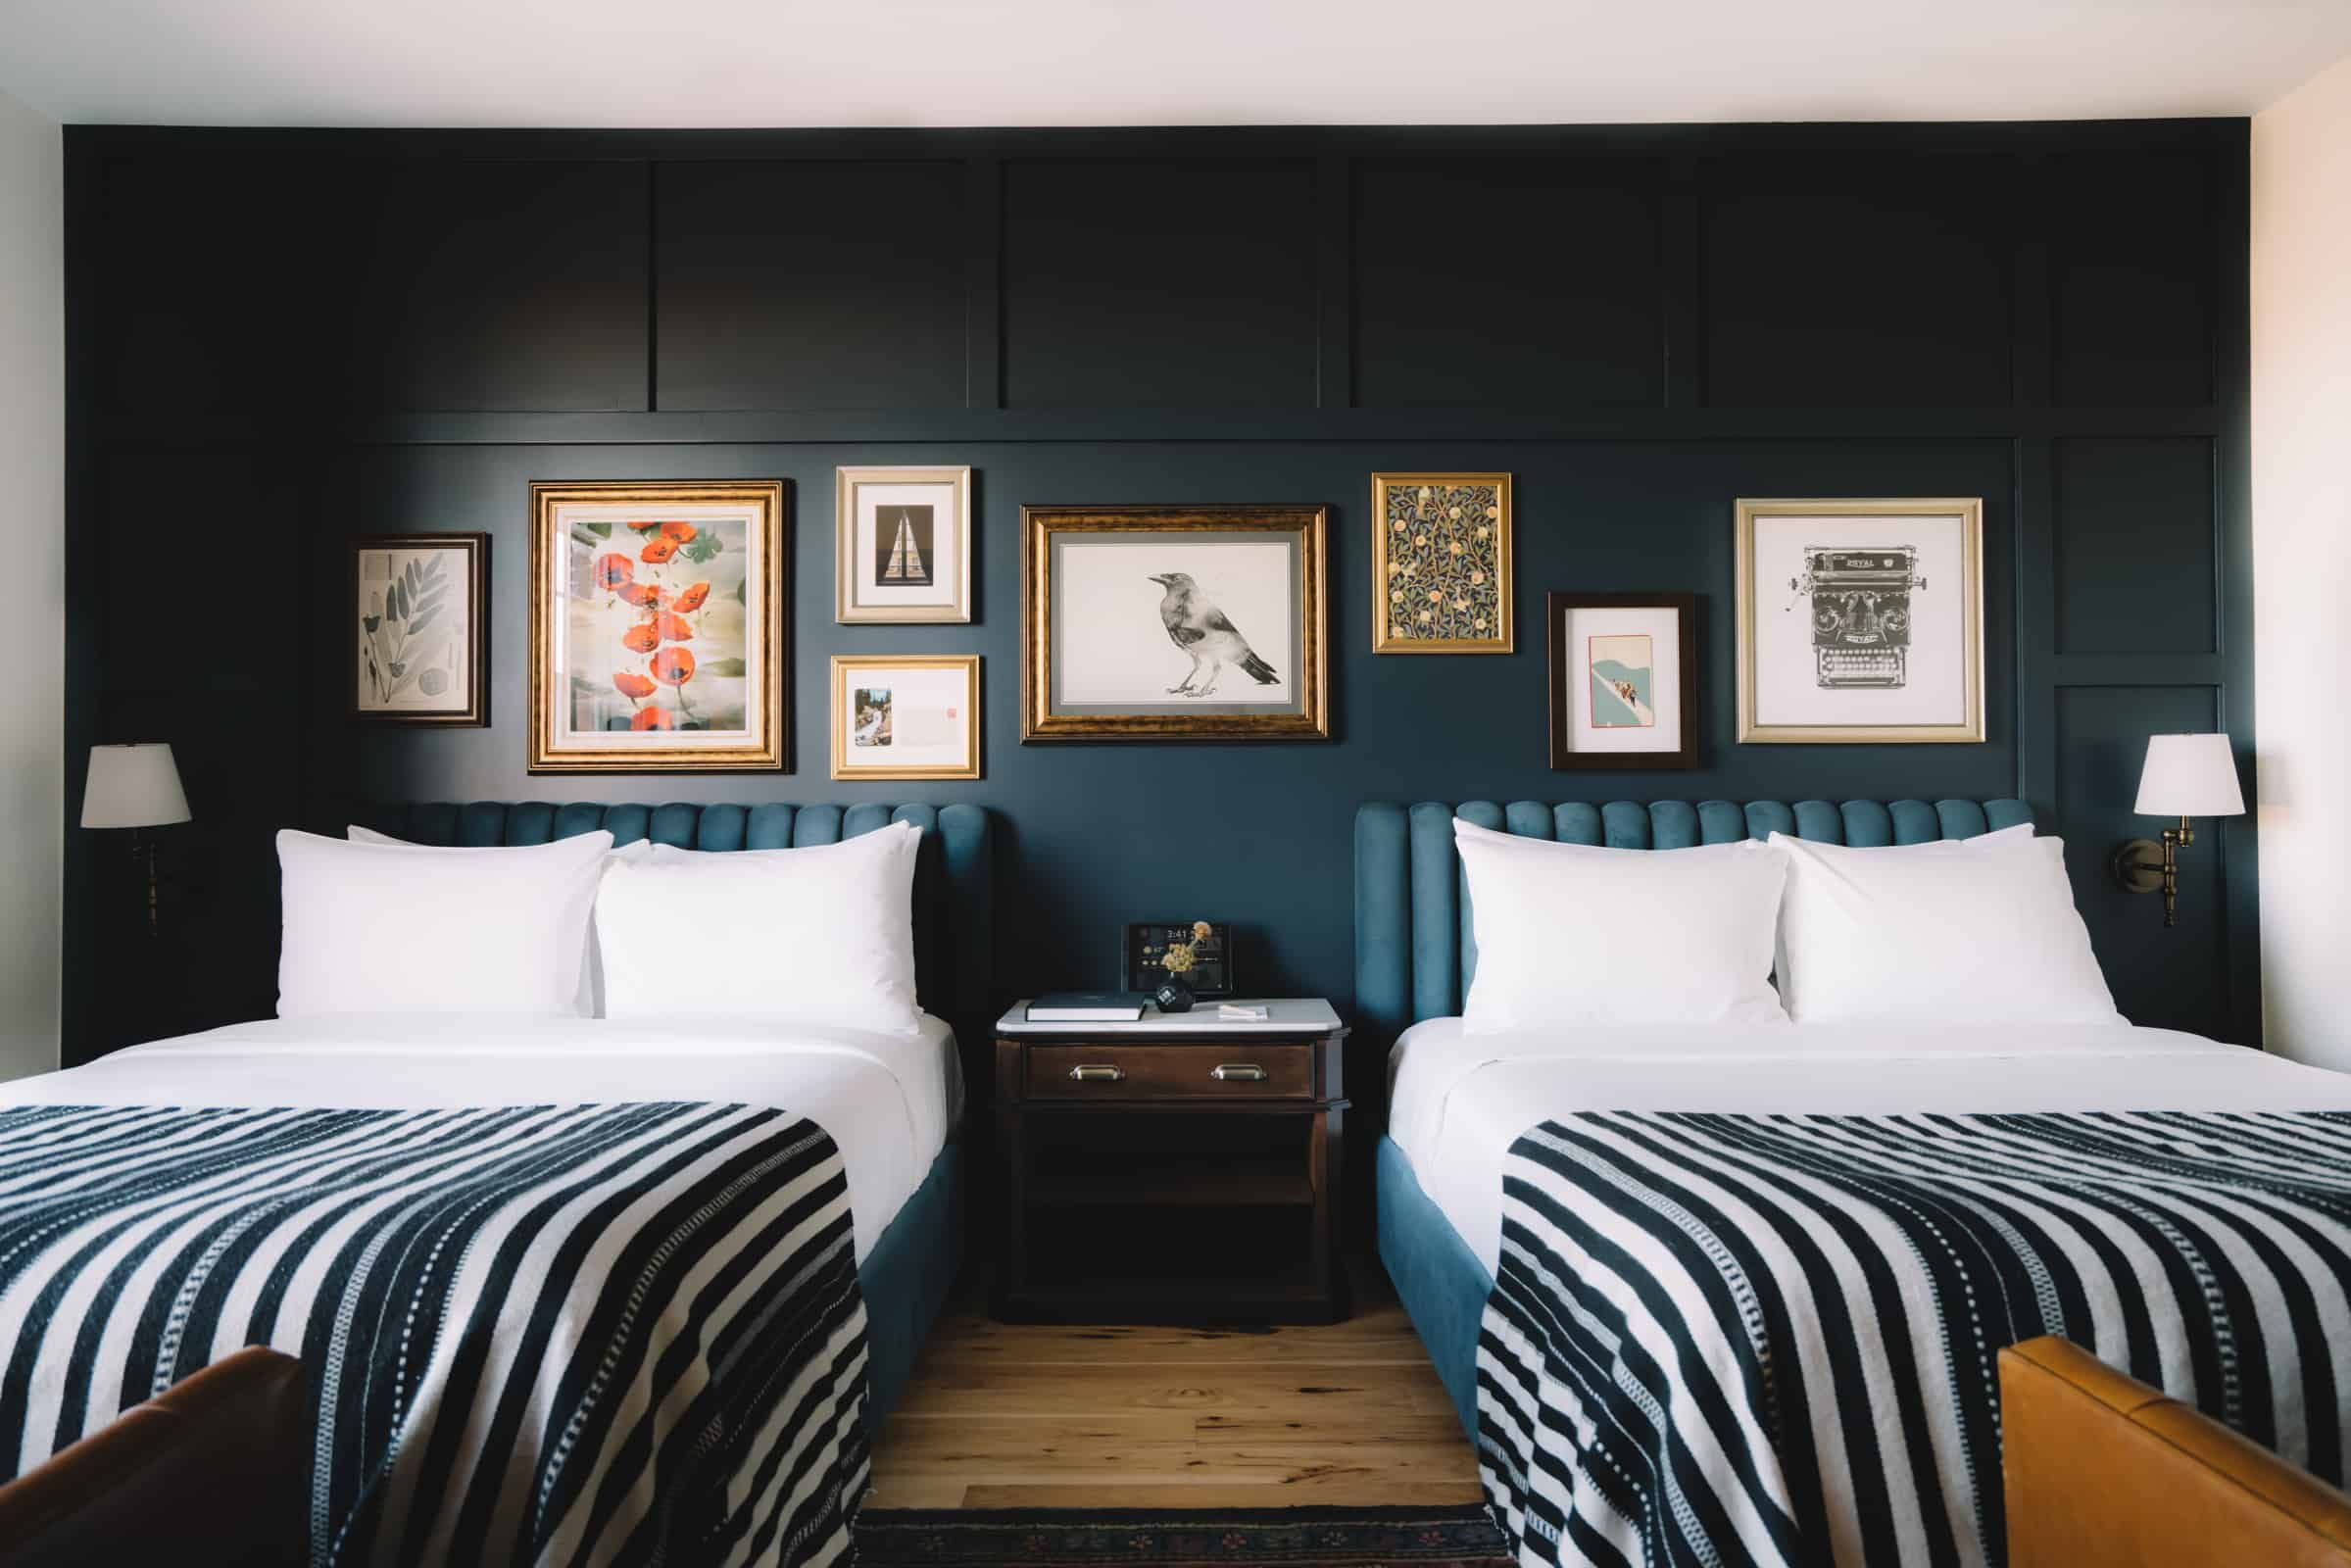 Hotel Rooms & Suites in RiNo, Downtown Denver Room, Home